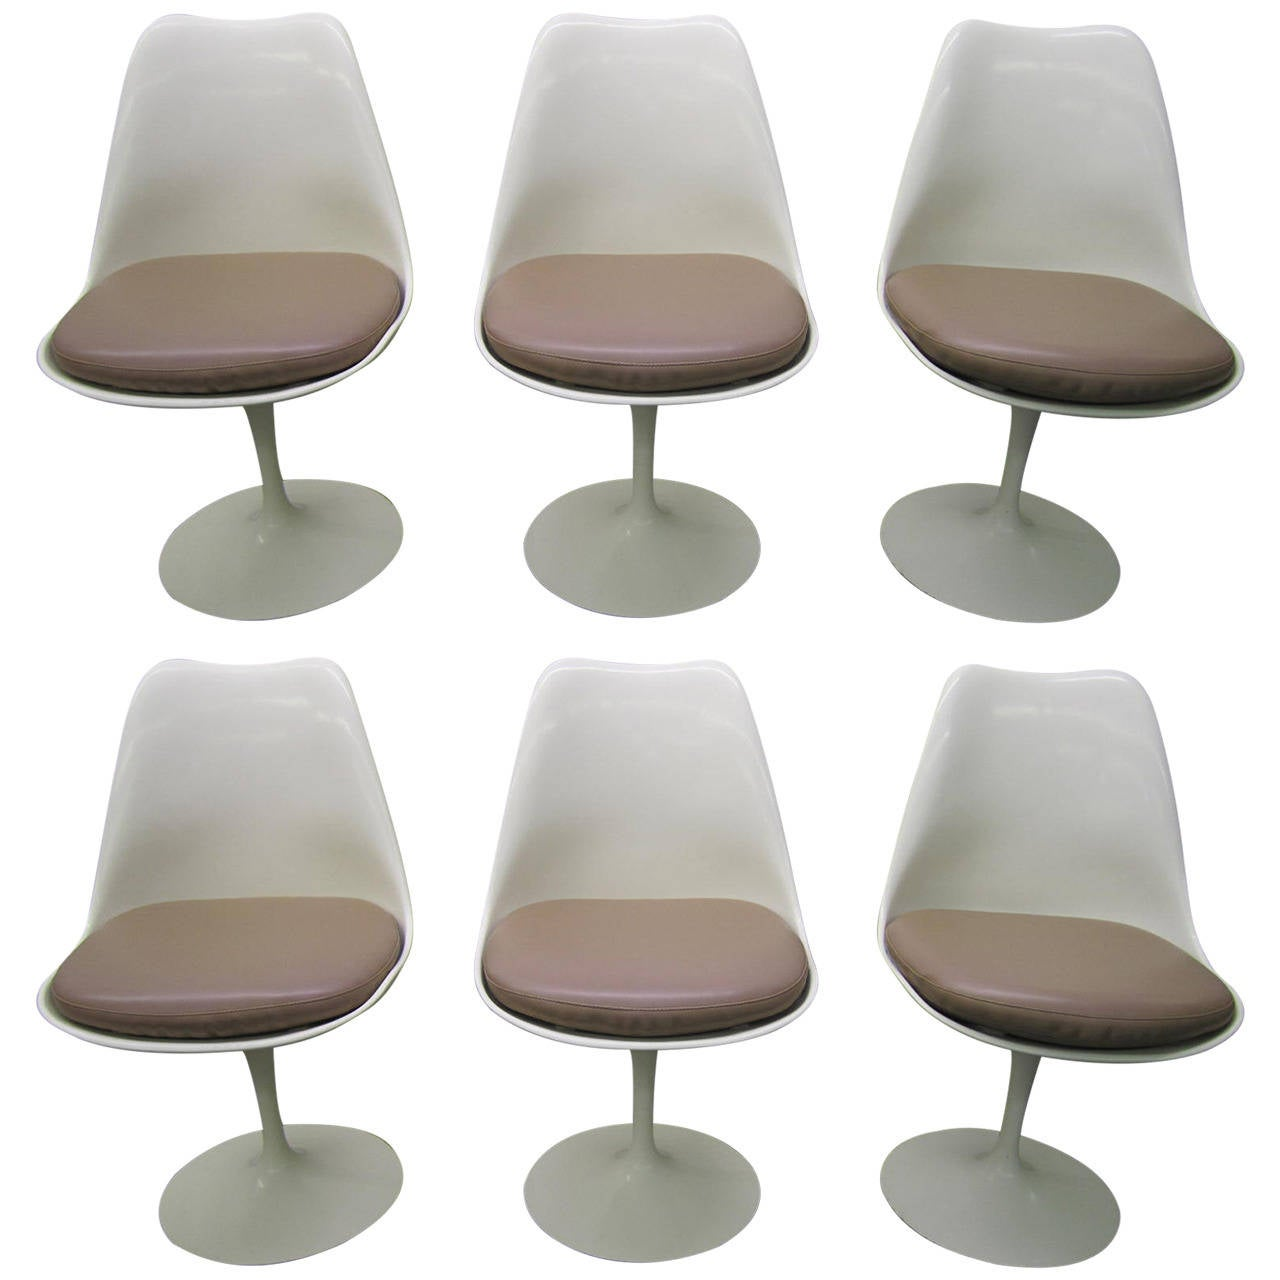 Vintage Mid Century Dining Rooms: Six Vintage Knoll Saarinen White Tulip Swivel Dining